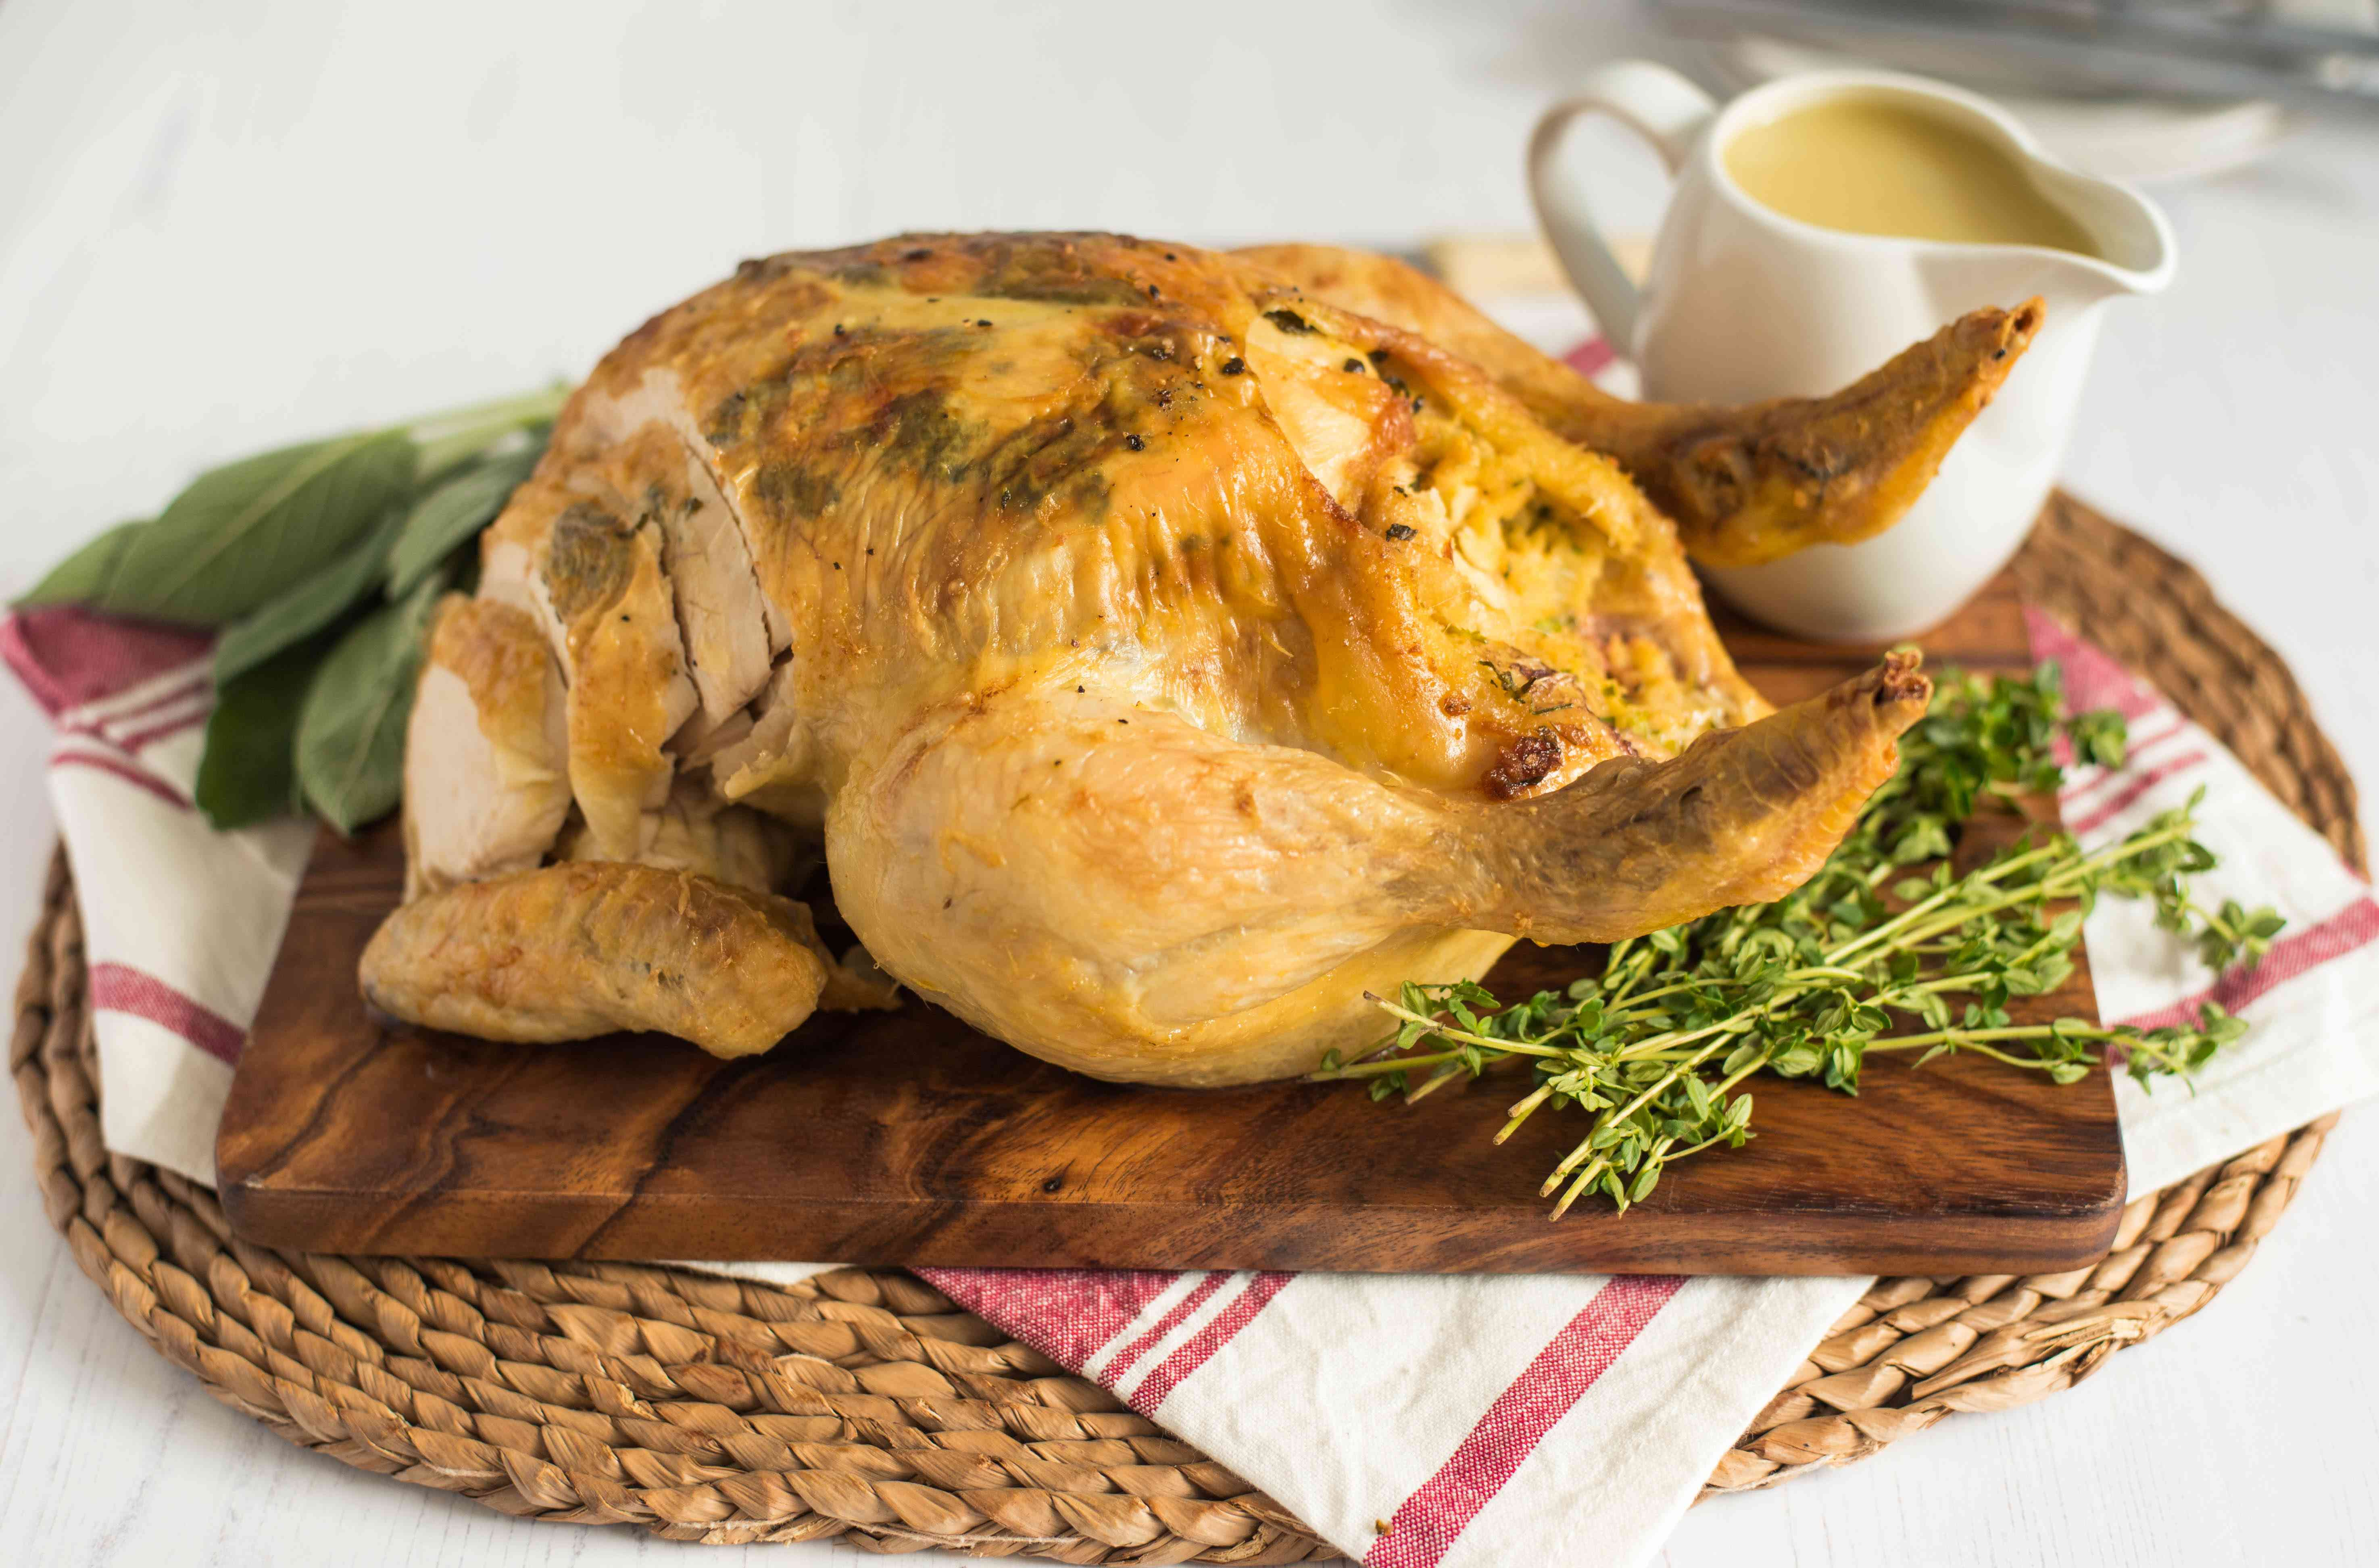 Whole stuffed chicken with pan gravy